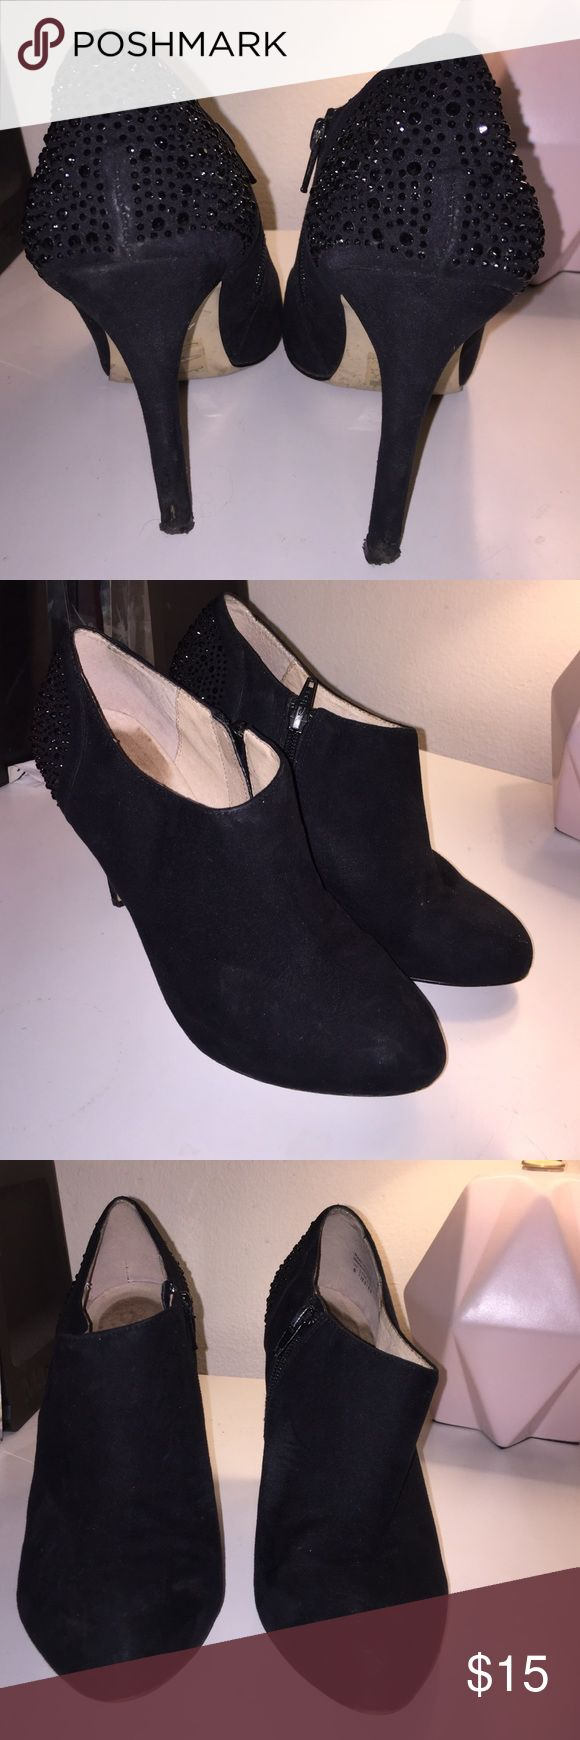 "Alsdo Suede Black Rhinestone Booties Aldo Black Suede Rhinestone Booties. Kept in good condition, but back of heels are a little ripped and bottom of heels will probably need to be replaced. 4"" heel Aldo Shoes Ankle Boots & Booties"